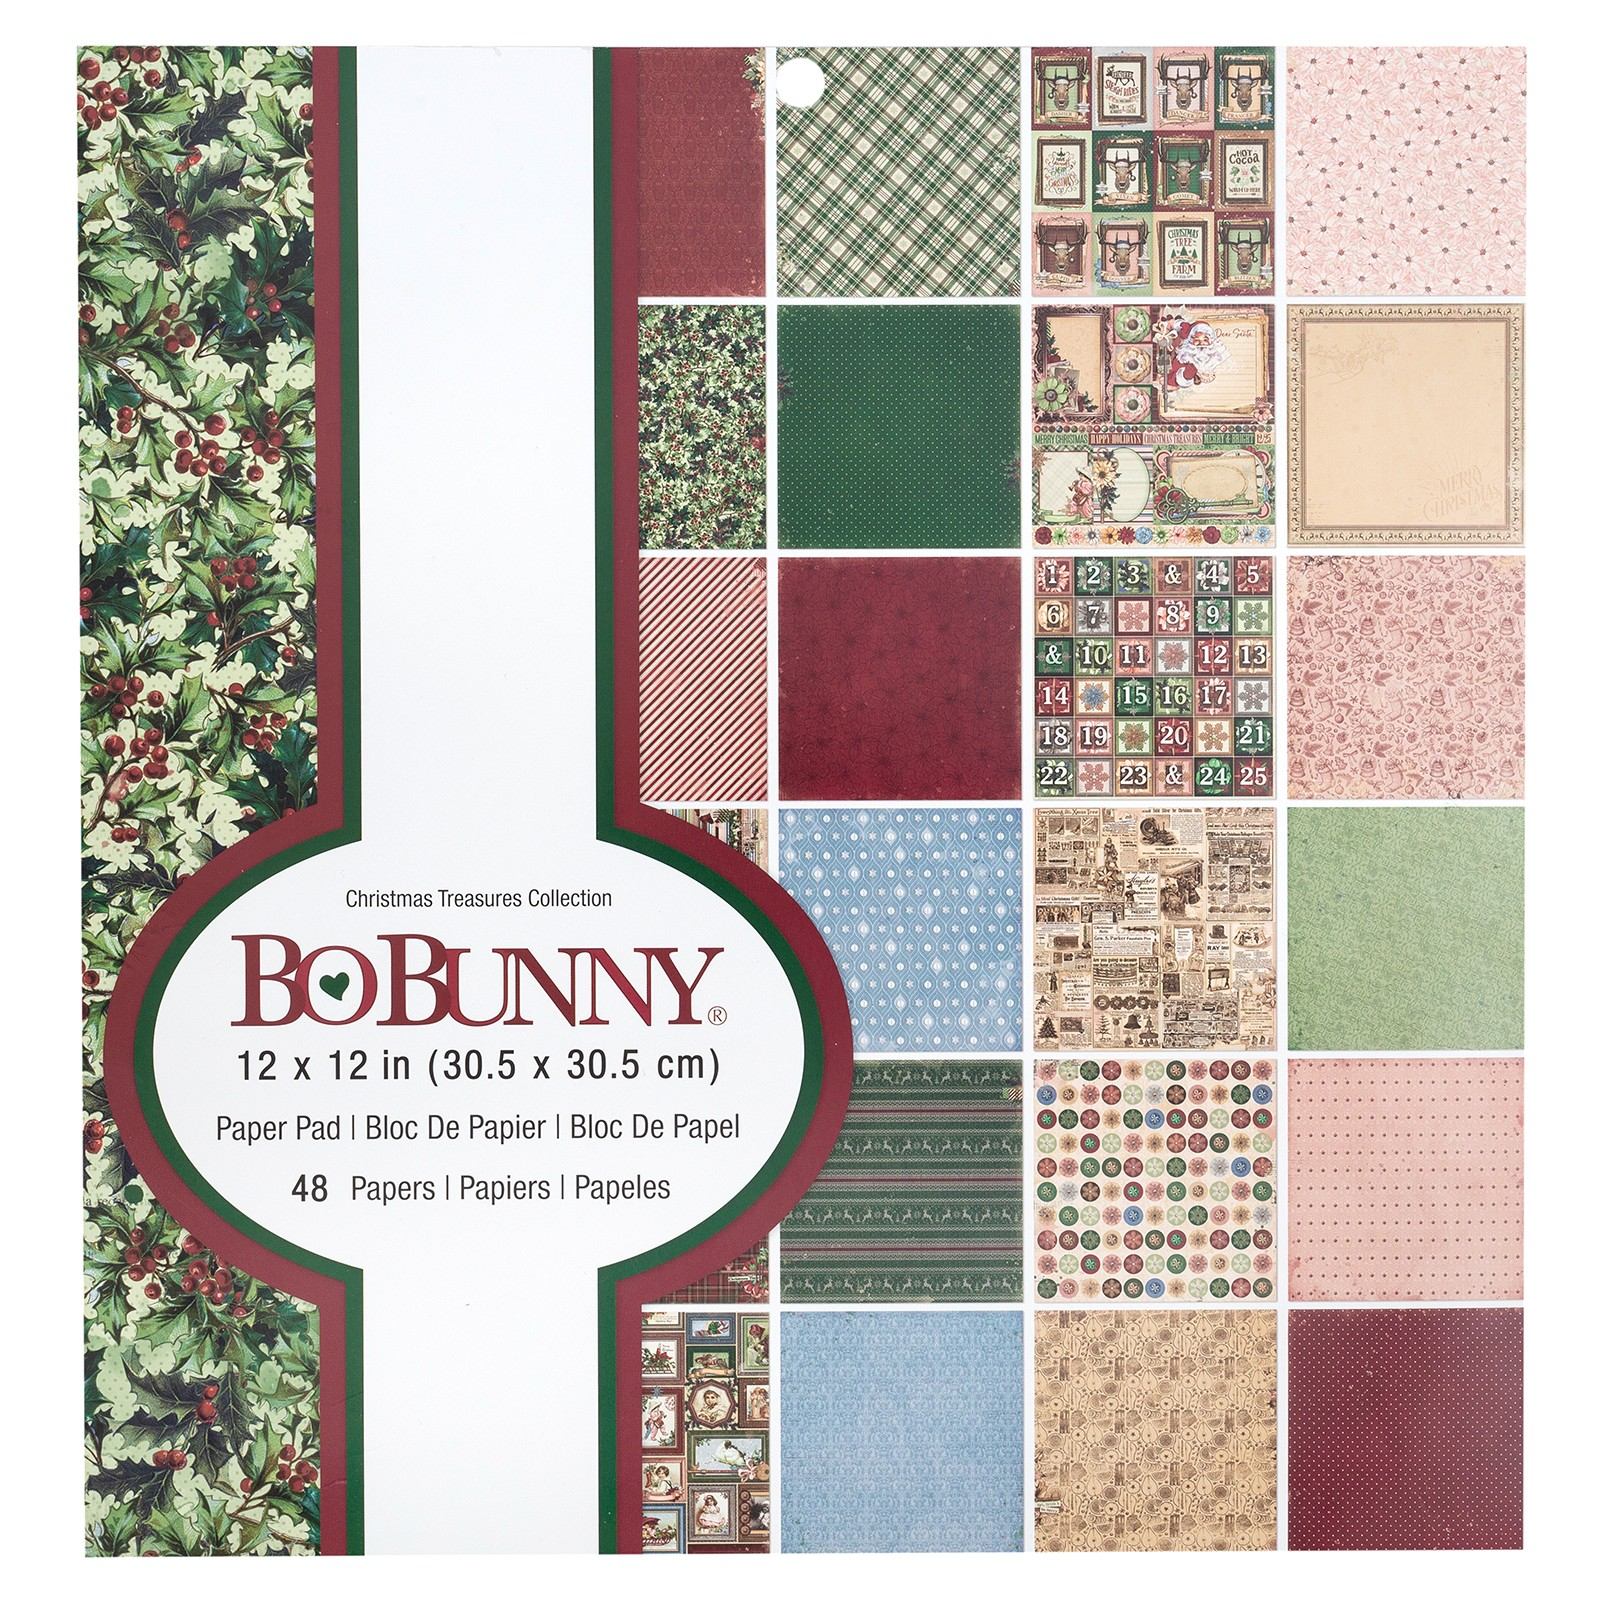 Bo Bunny Christmas Treasures - 12 x 12 Paper Pad - 48 Sheets